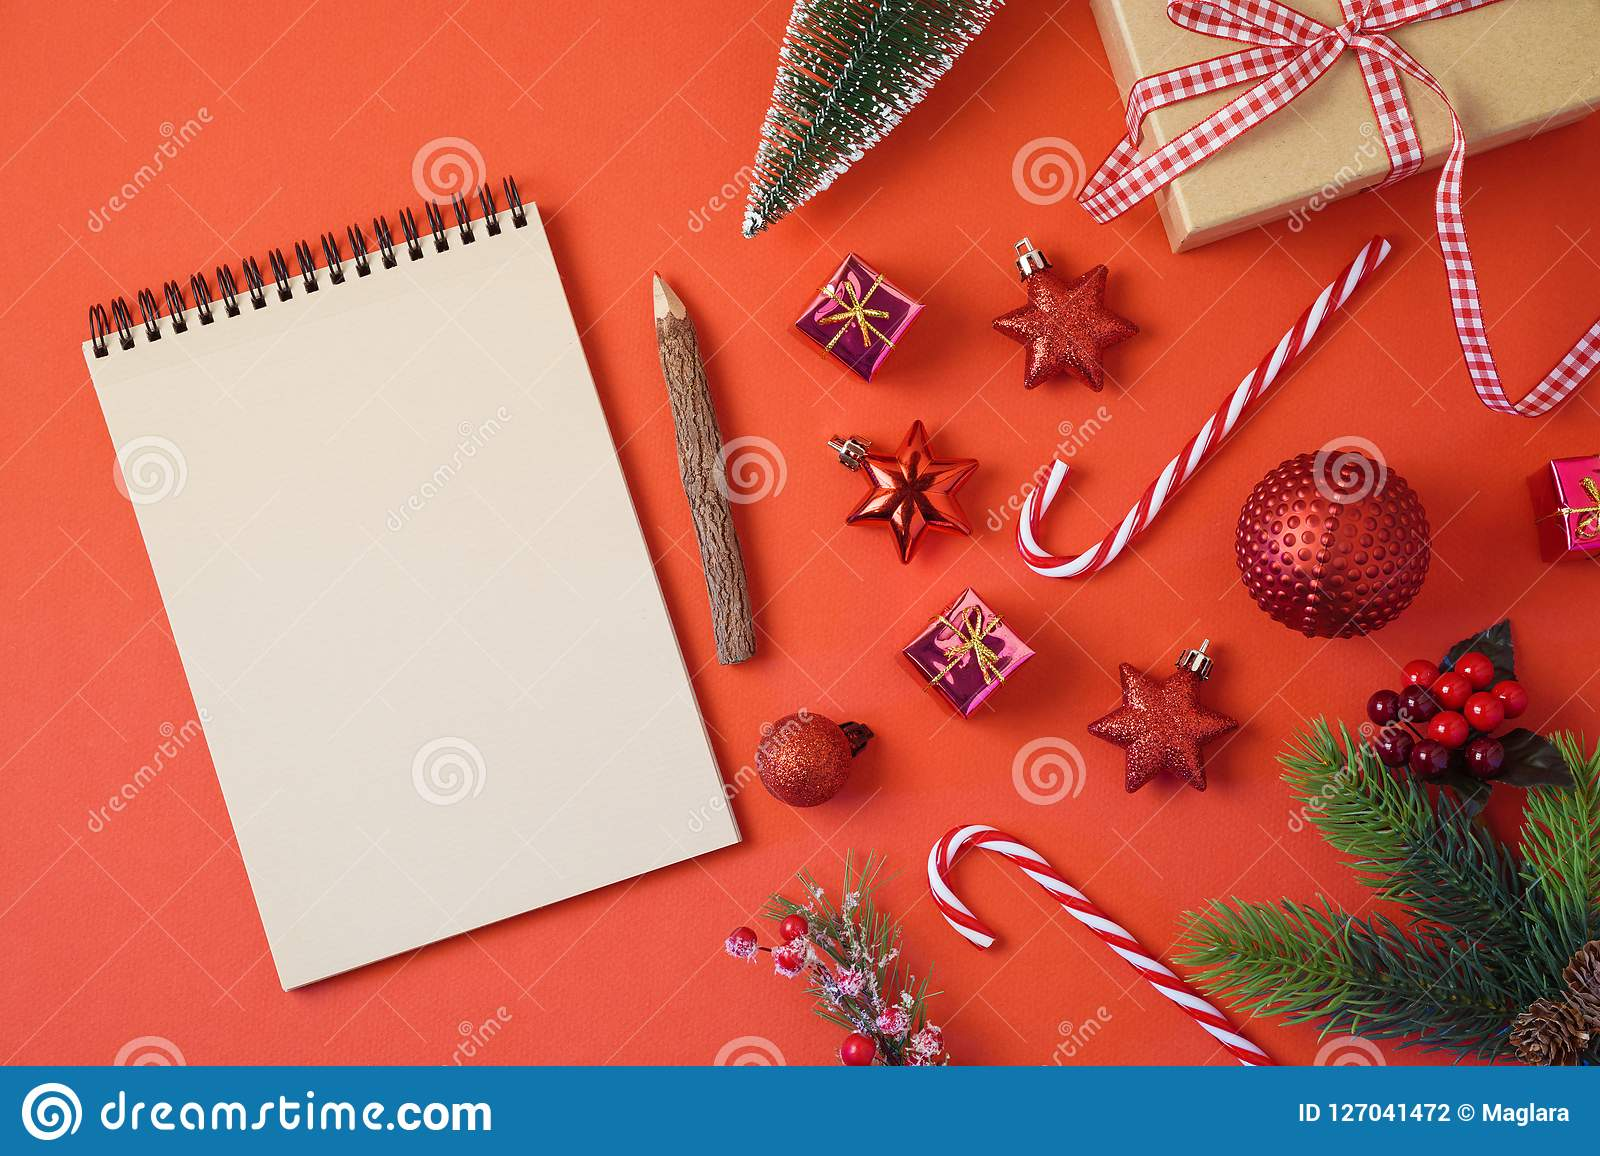 Christmas holiday background with notebook and decorations on red table.